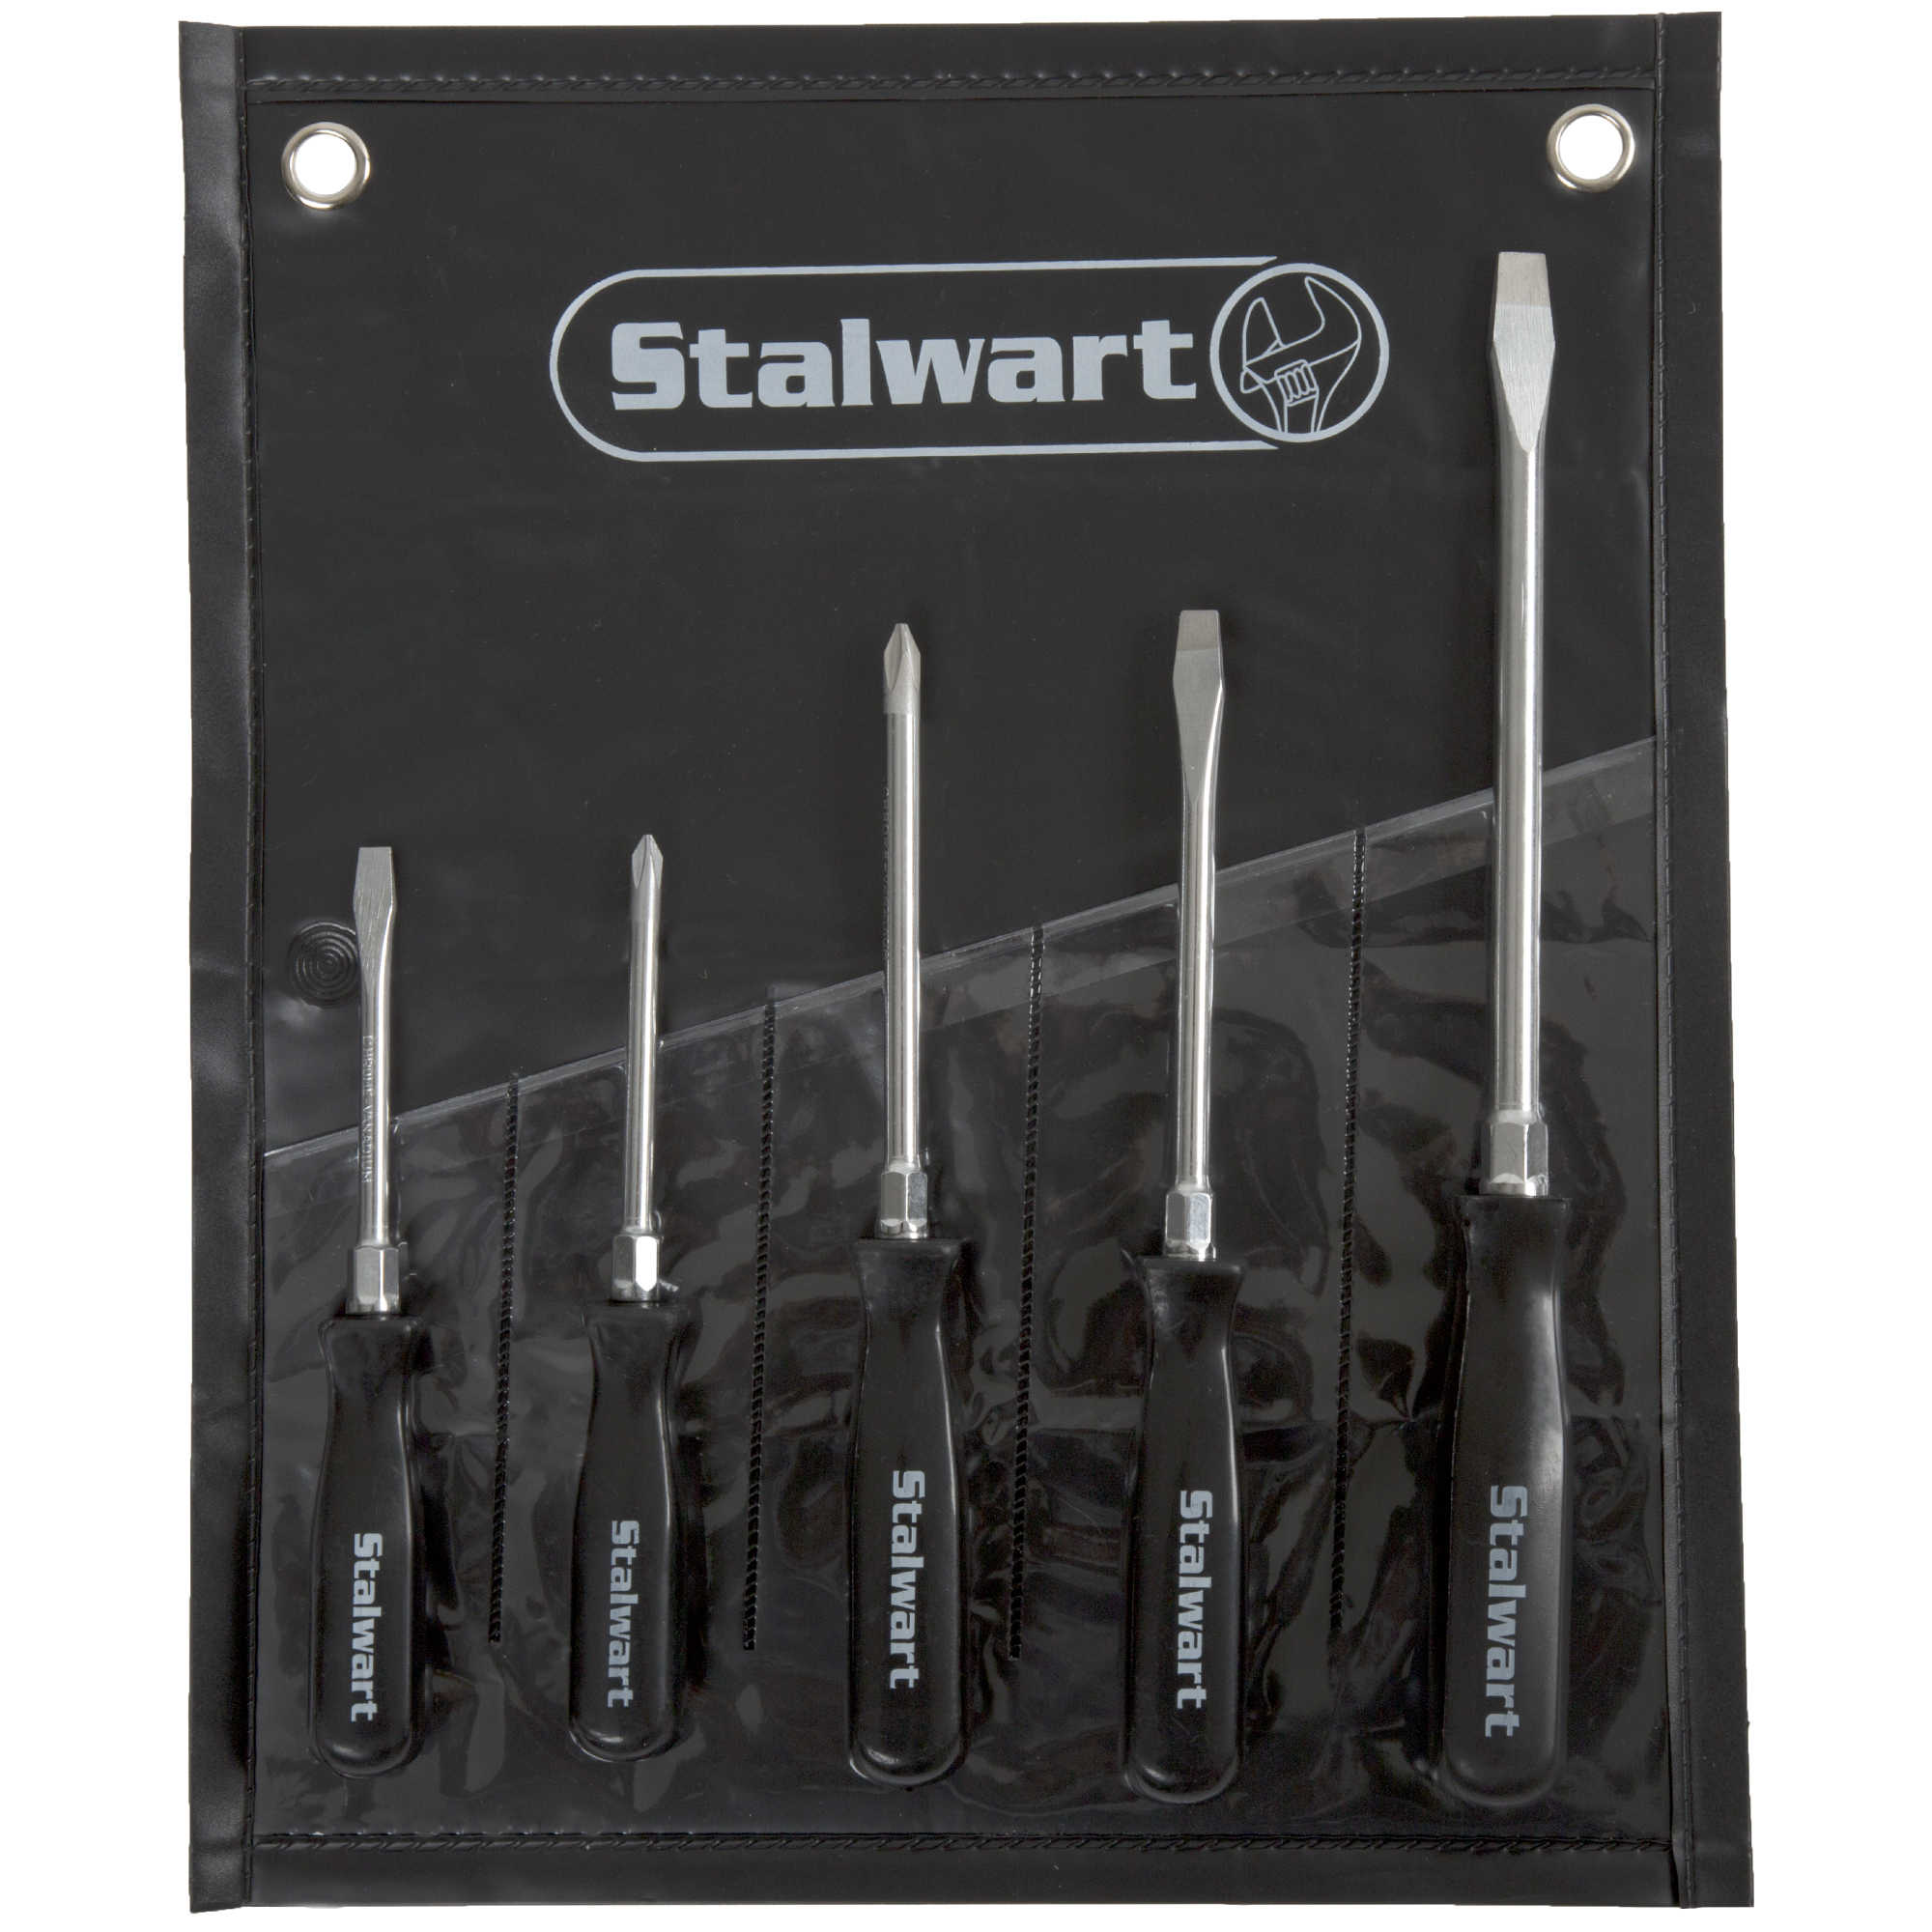 5 PC Screwdriver Set with Storage Pouch - Slotted & Phillips by Stalwart